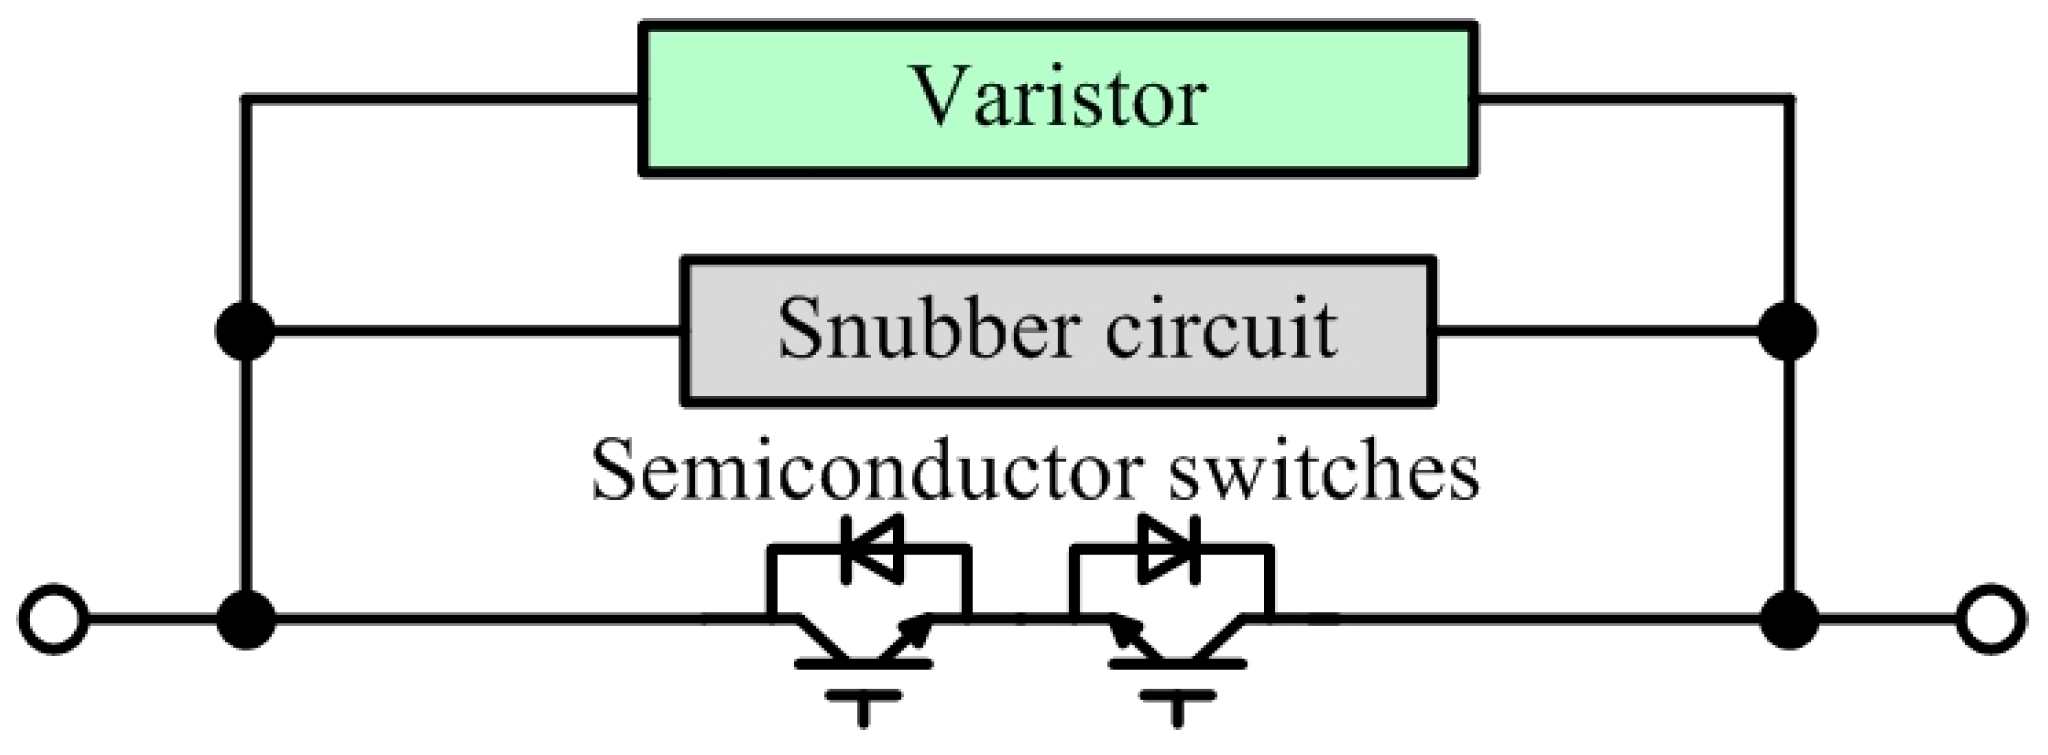 Energies Free Full Text Semiconductor Devices In Solid State Electrical Circuit Breaker Failures Performance Data 10 00495 G014 Figure 14